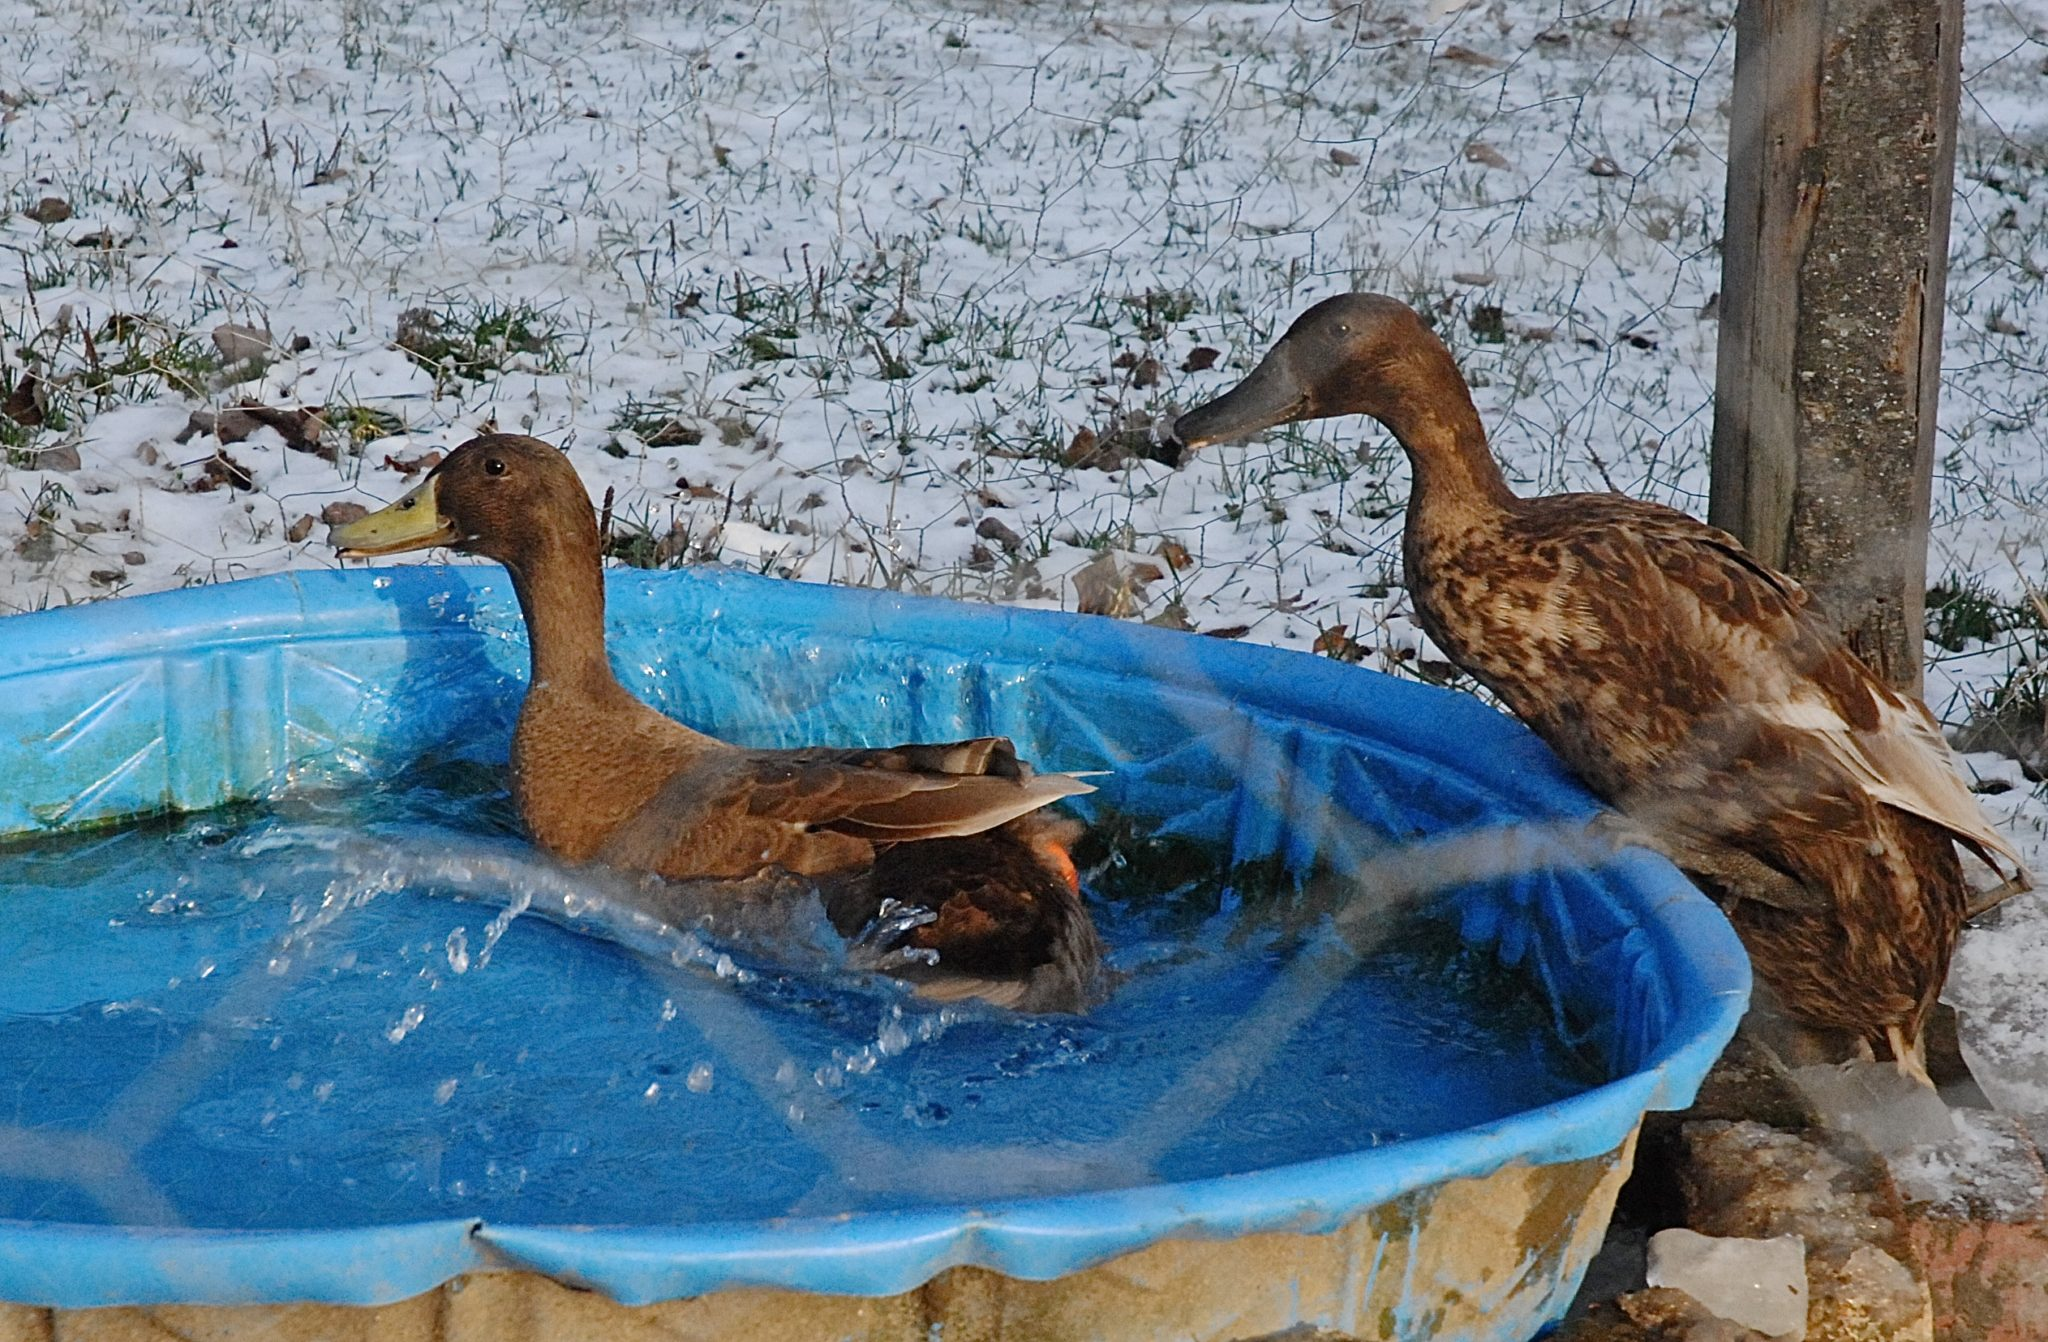 How to pick ducks for your homestead